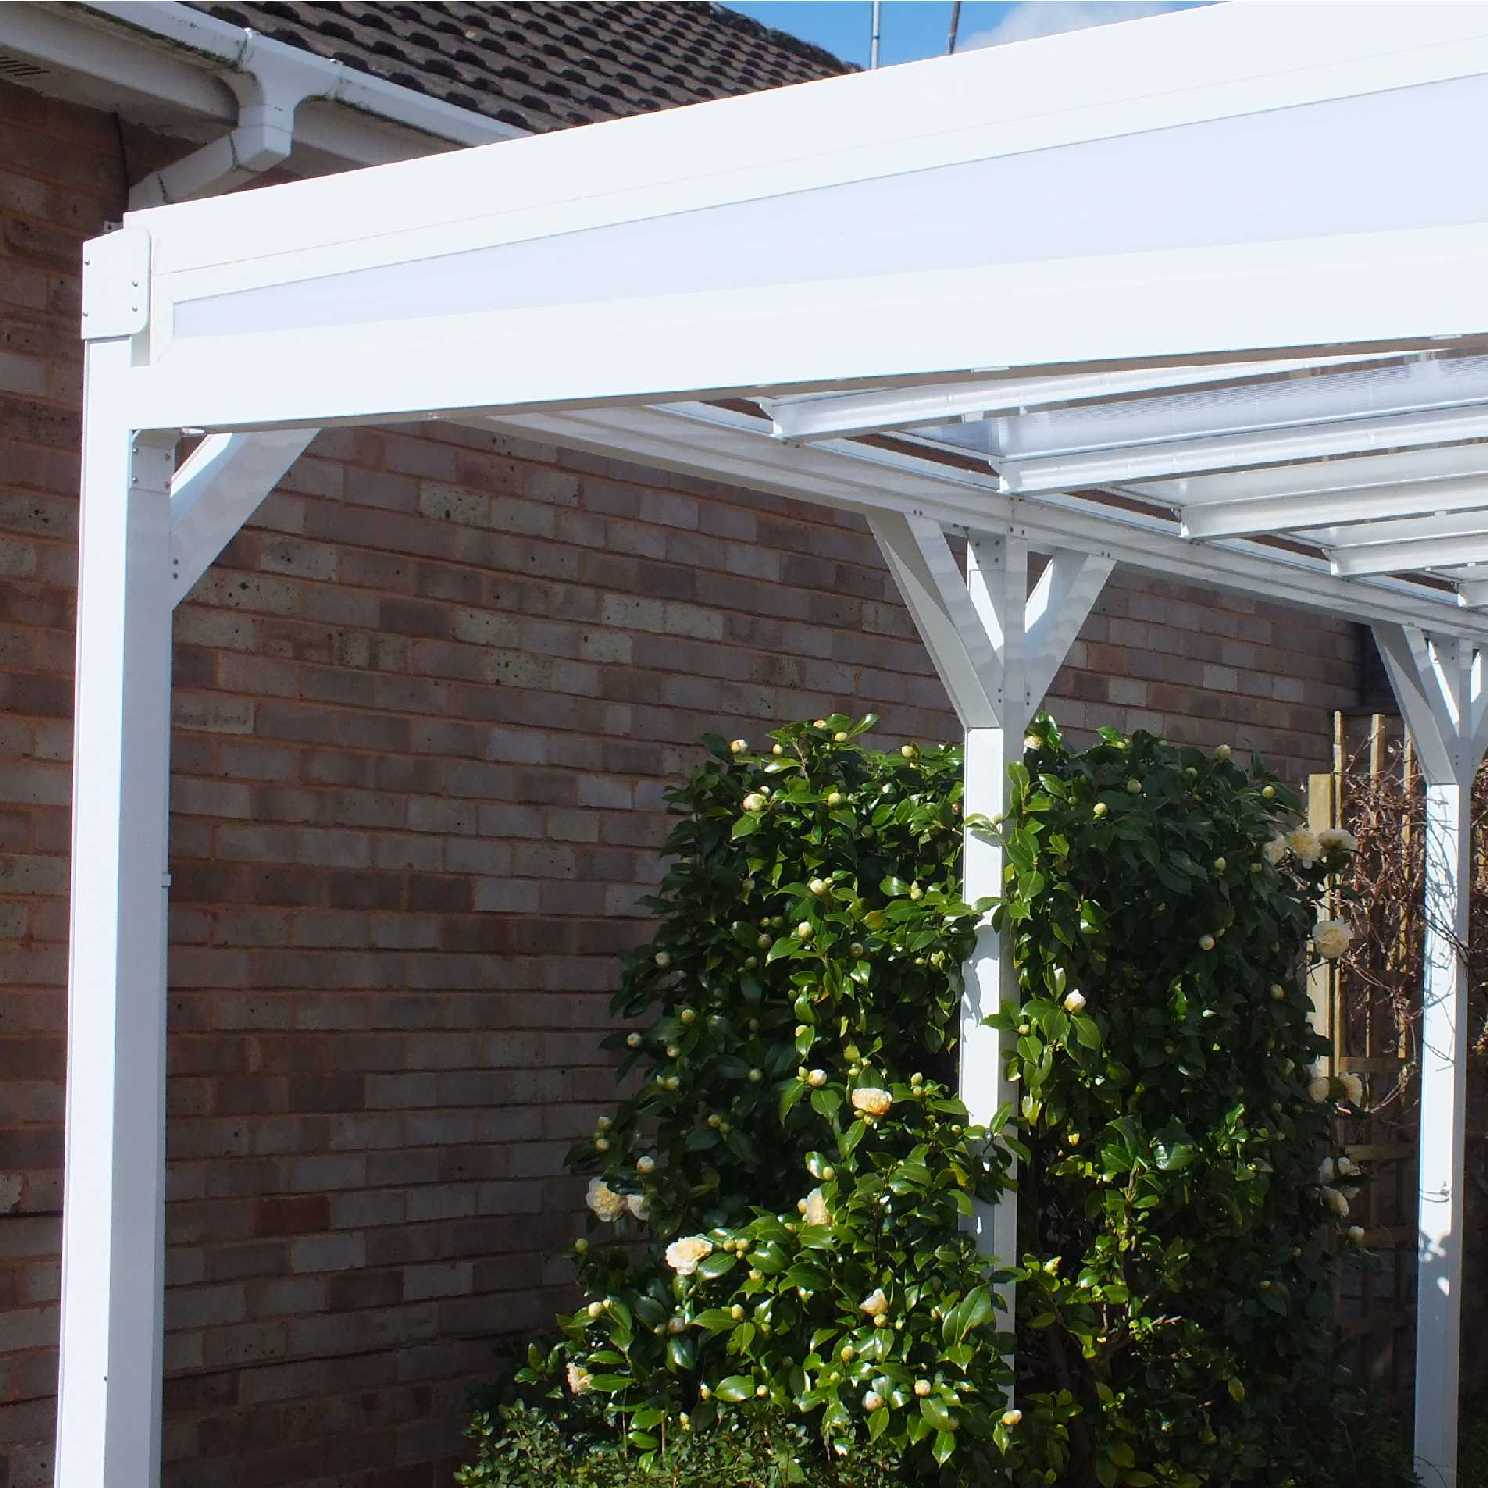 Omega Smart White Lean-To Canopy with 16mm Polycarbonate Glazing - 10.6m (W) x 2.5m (P), (5) Supporting Posts from Omega Build